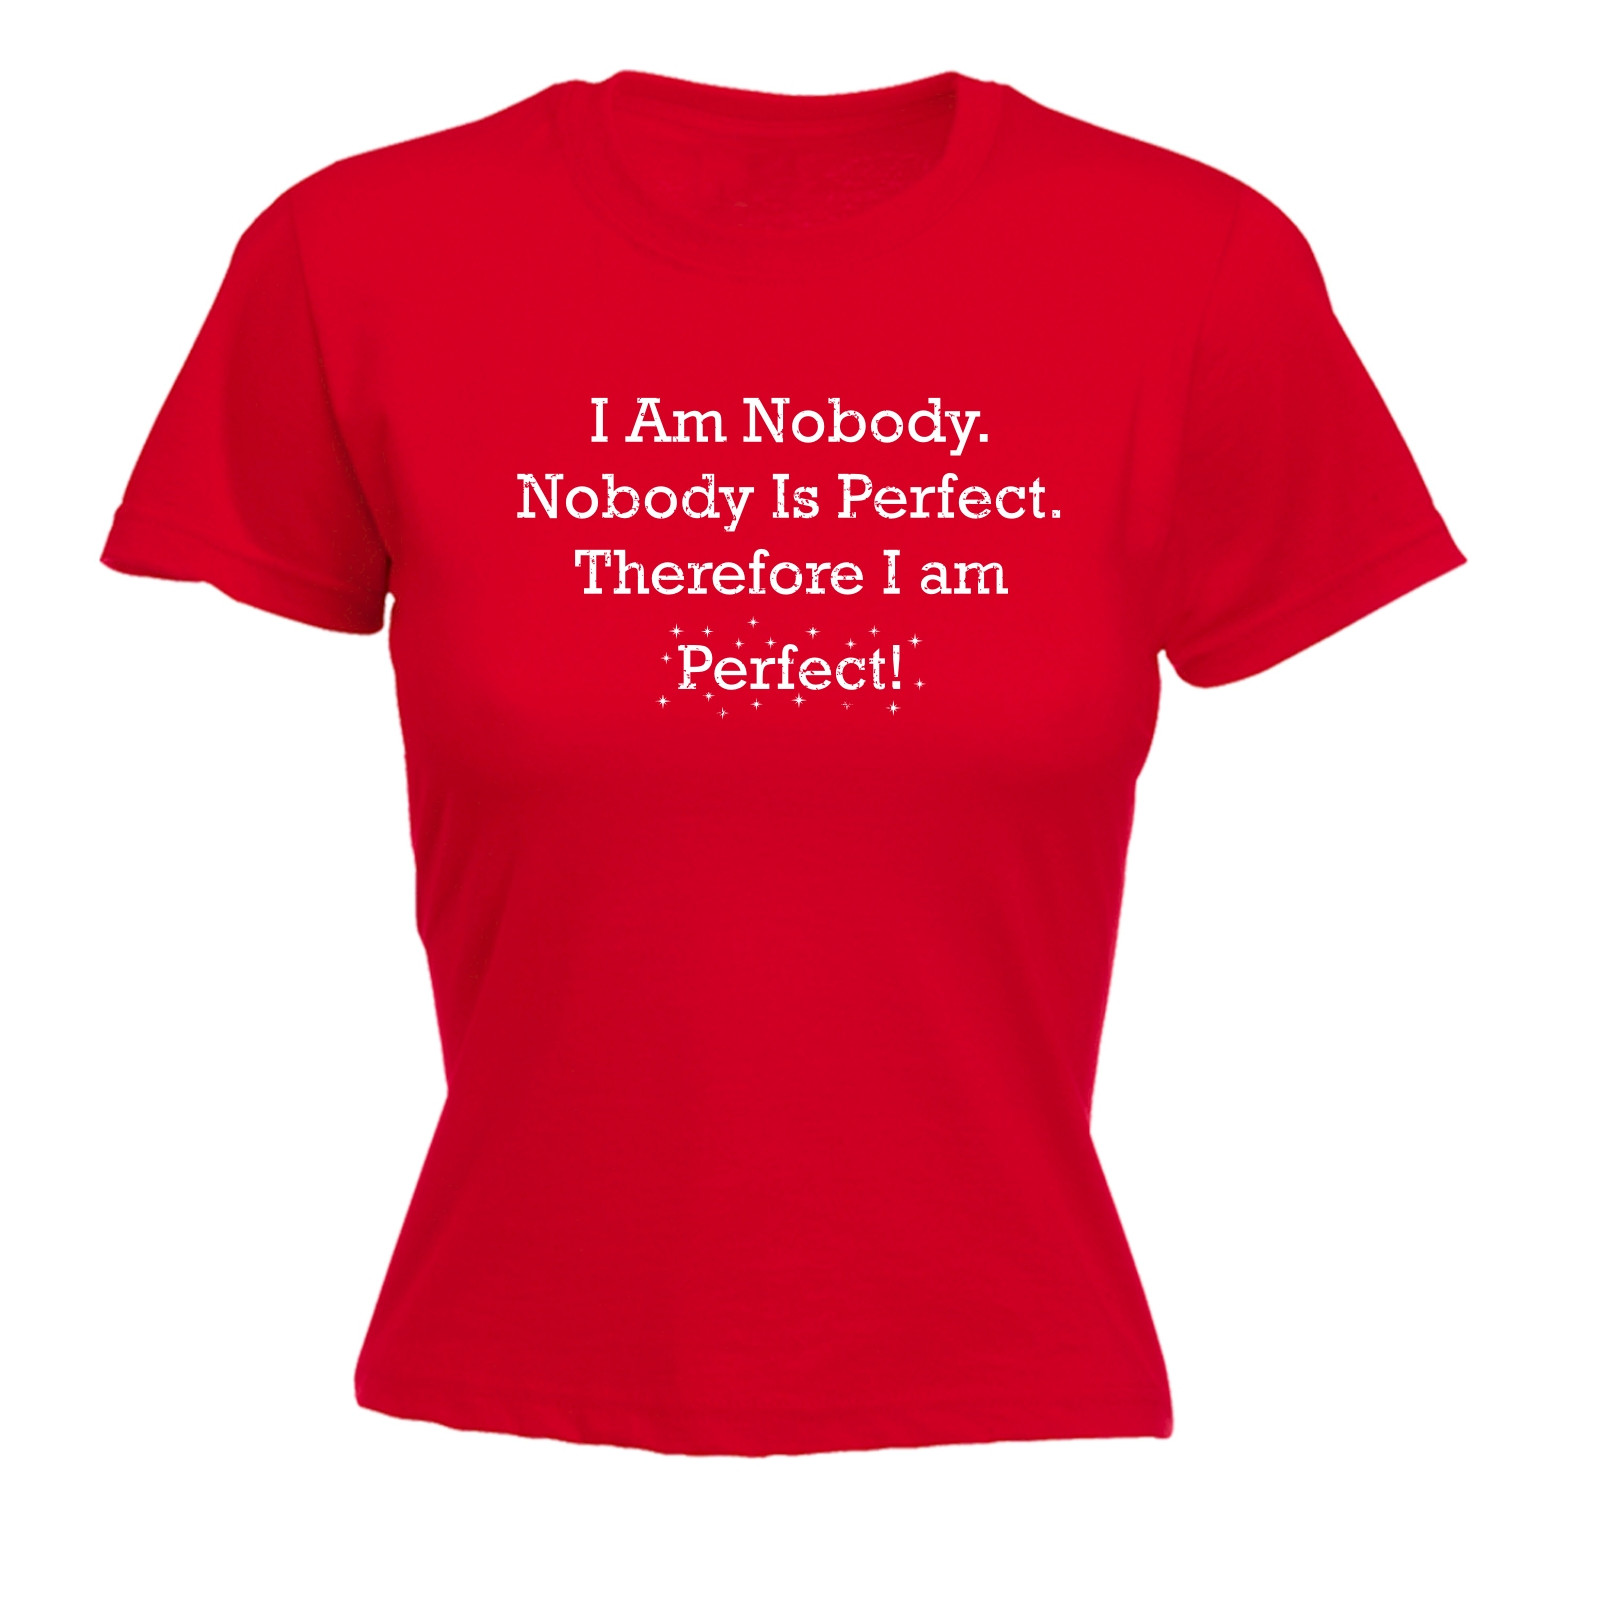 I Am Nobody I Am Perfect WOMENS T-SHIRT Mothers Day Sarcastic Clever Witty Funny Fashion Cotton Casual T Shirt Animal